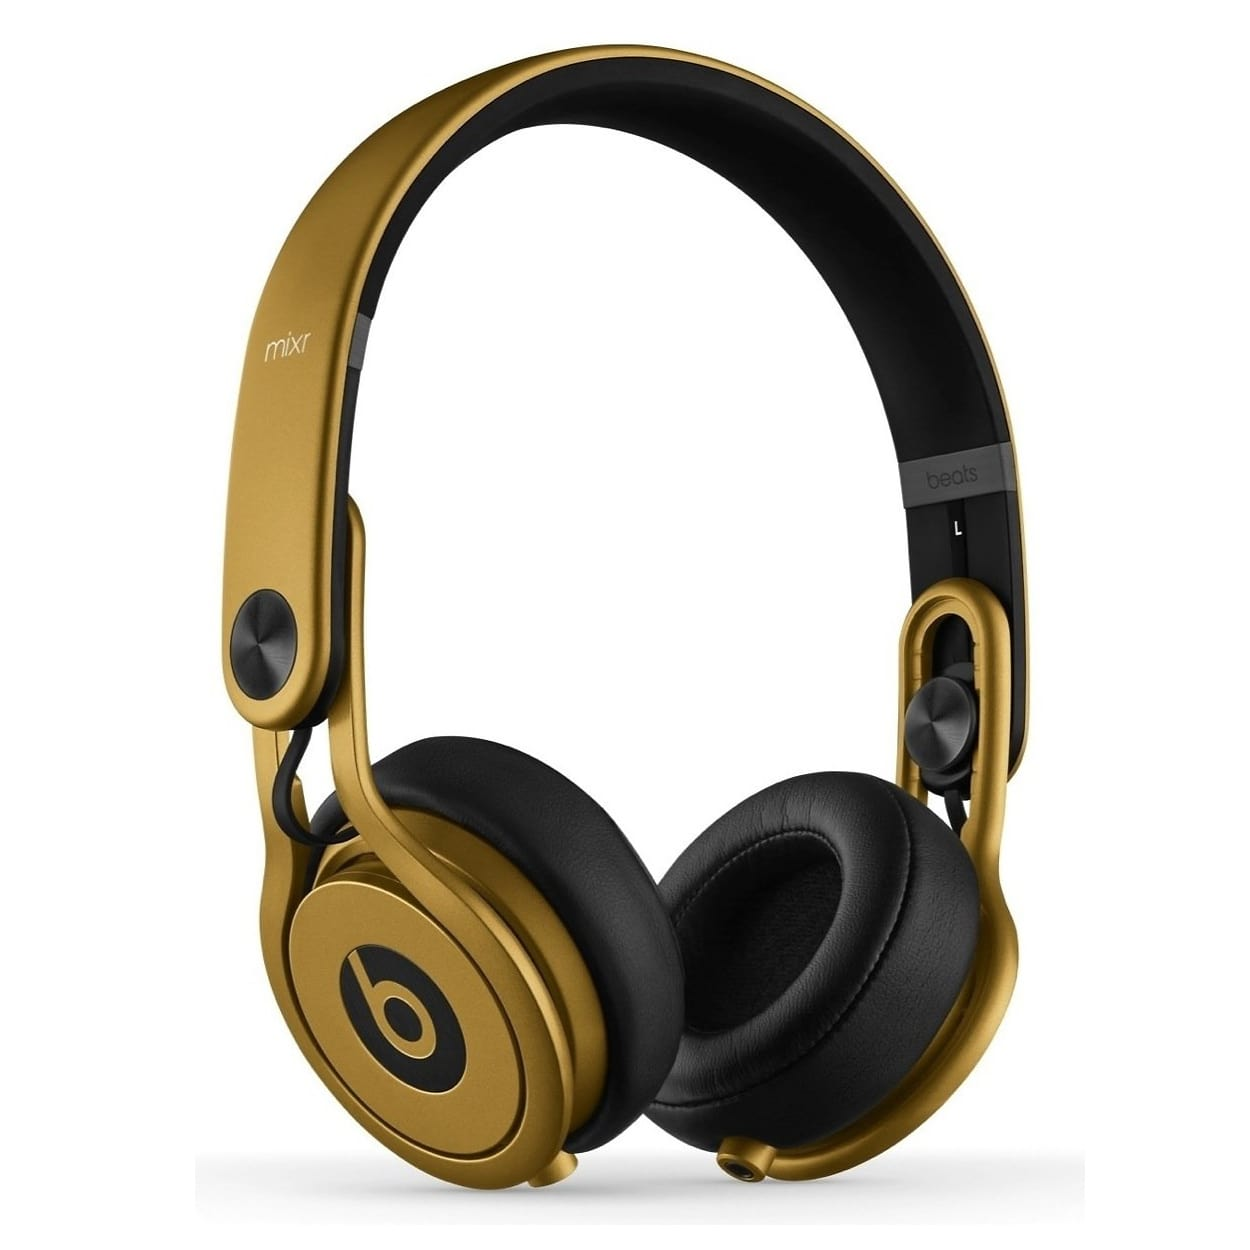 Beats Mixr On-Ear Limited Edition Headphones - Gold | Reverb